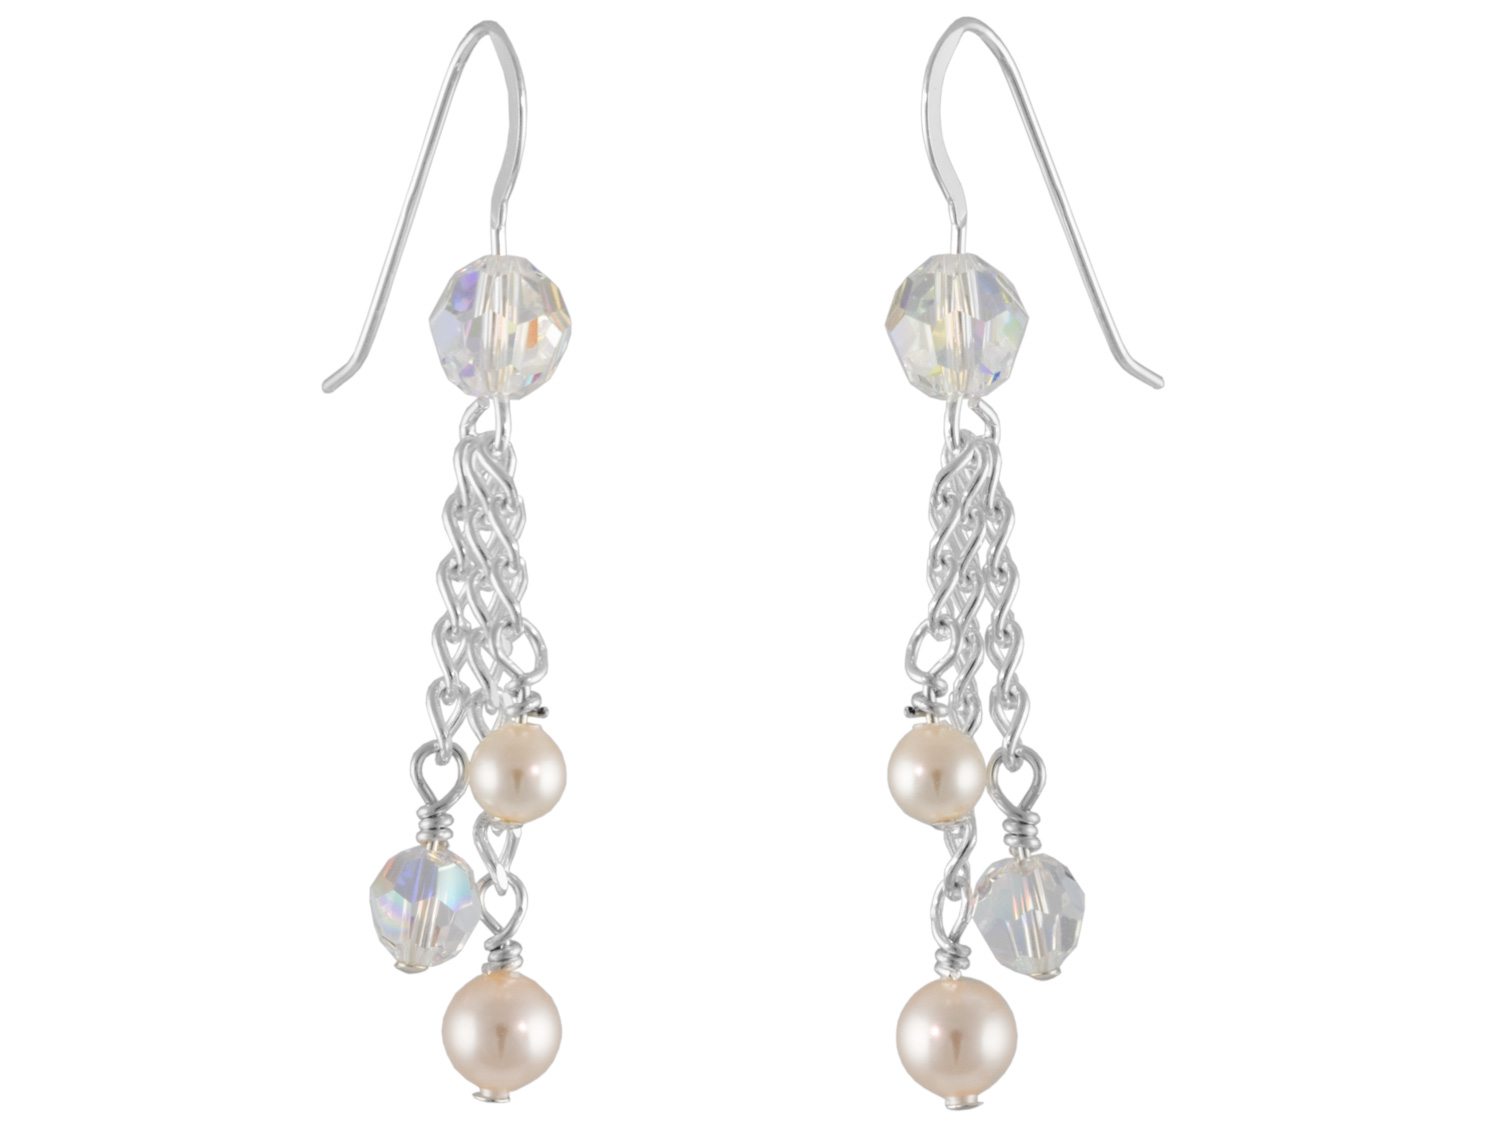 Earrings with Pearls & Crystals